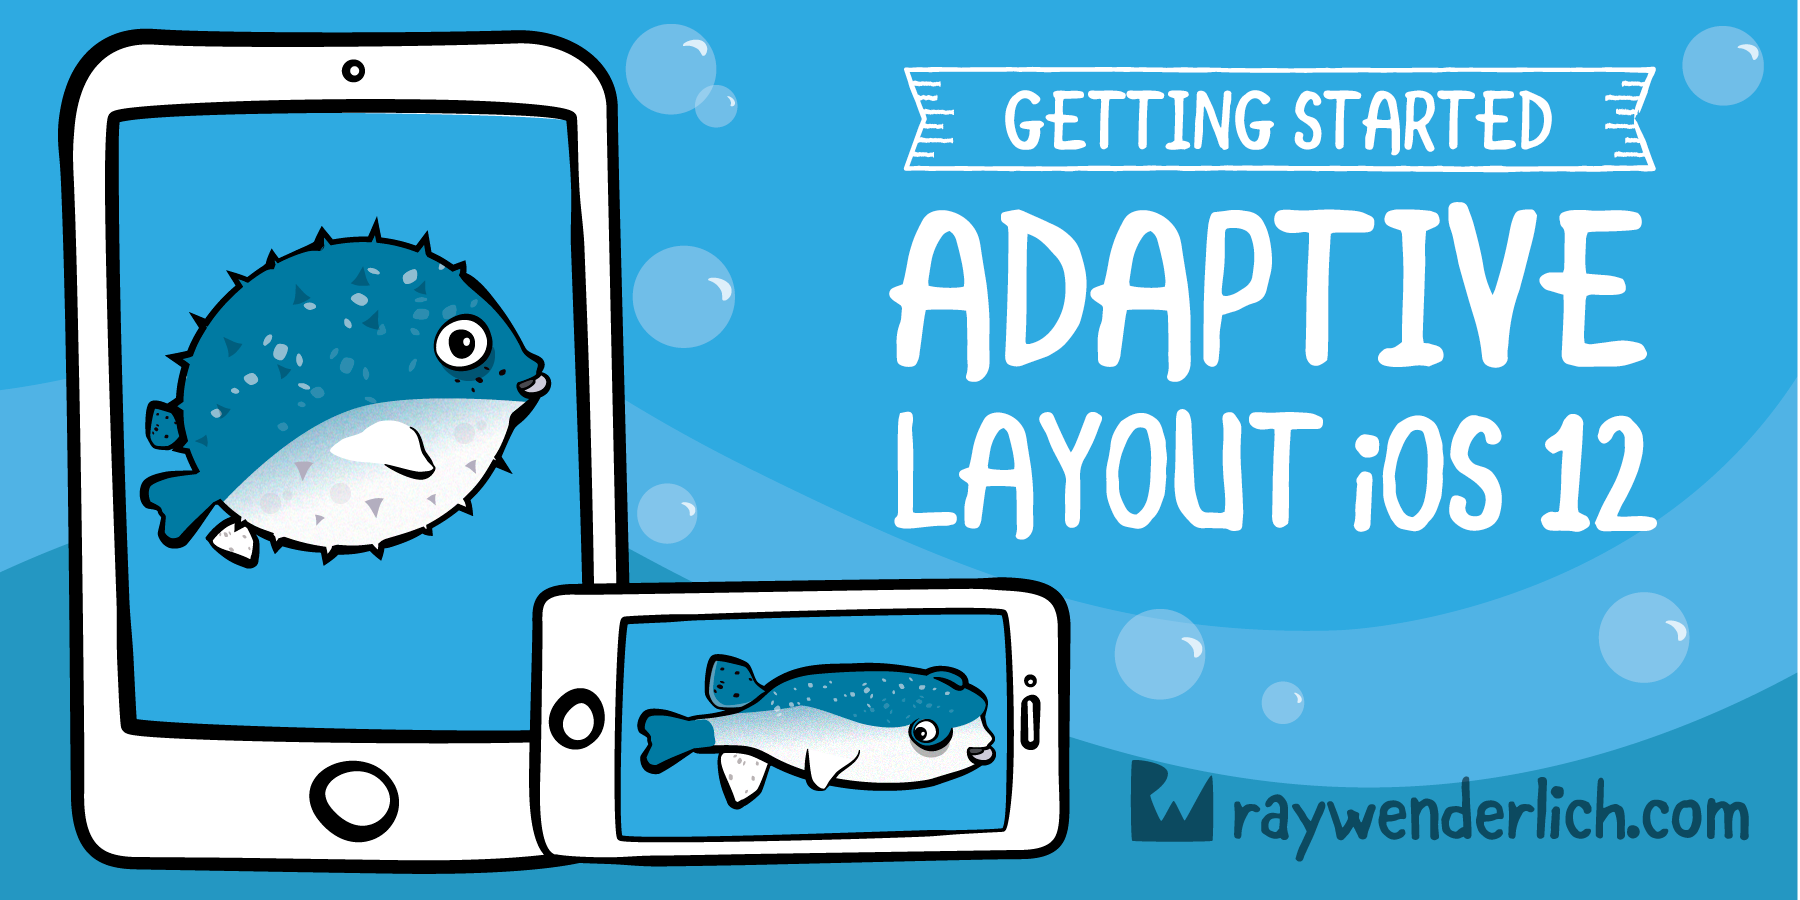 QnA VBage Adaptive Layout Tutorial in iOS 12: Getting Started [FREE]